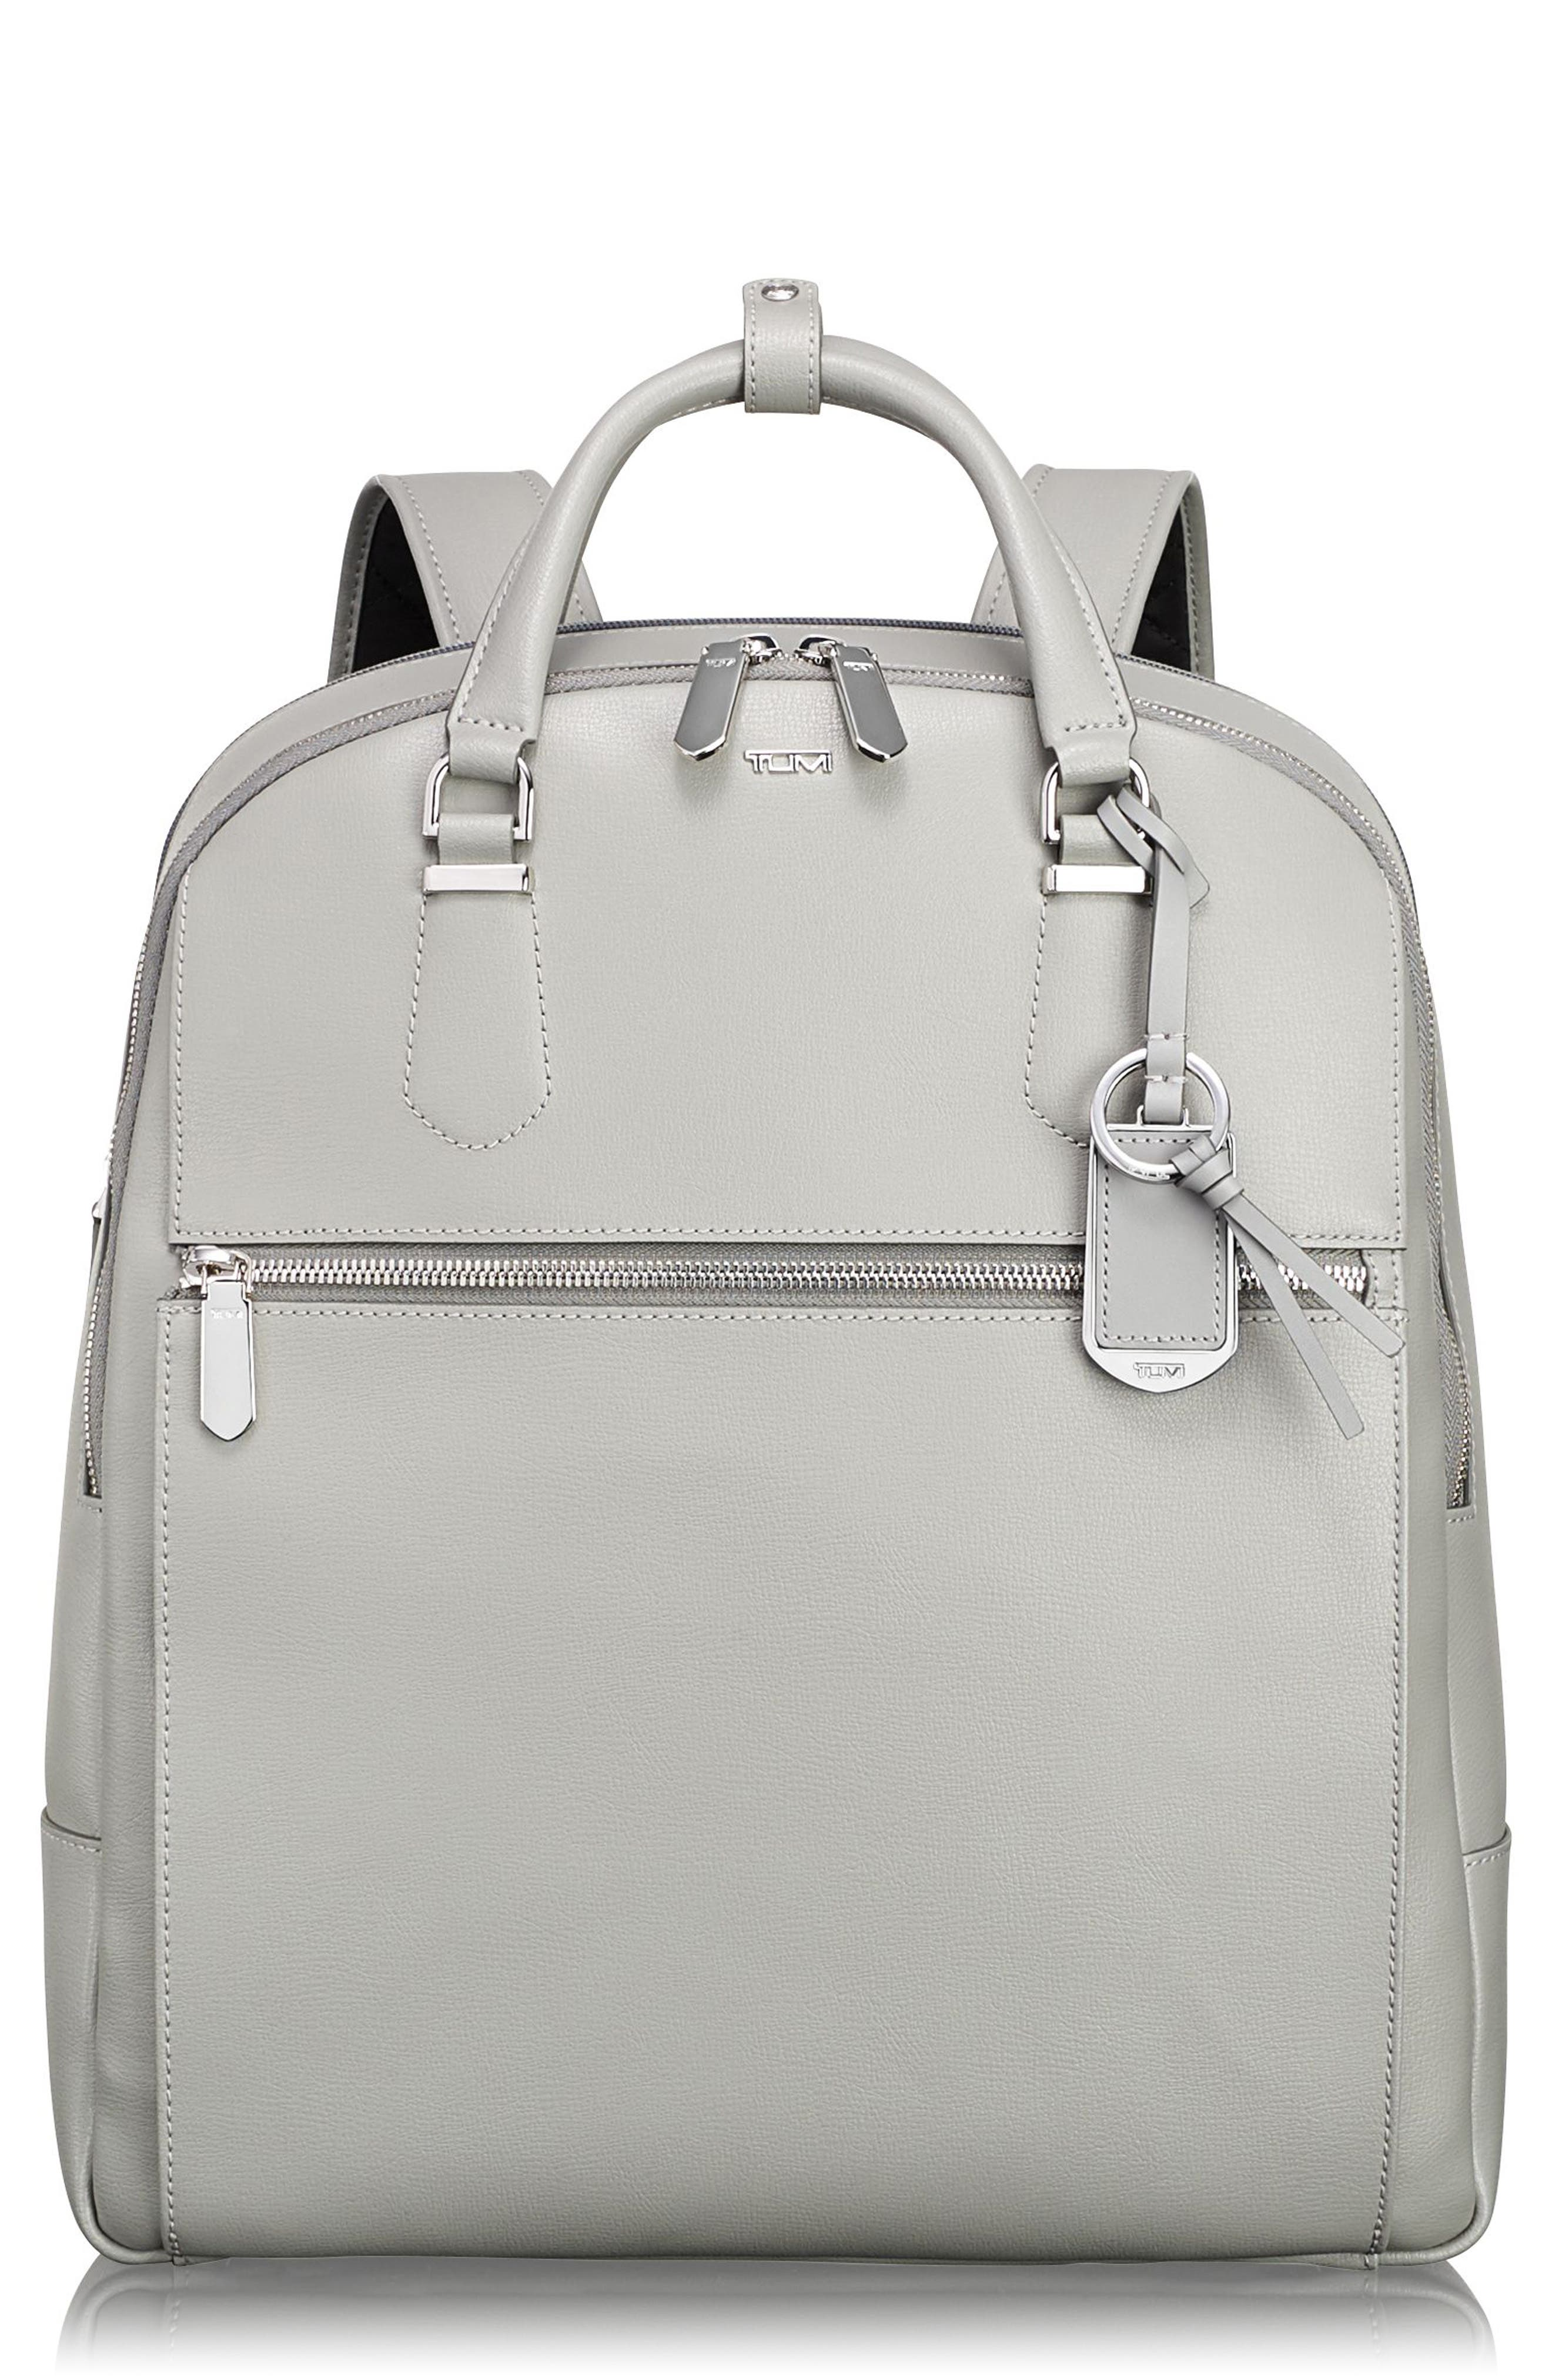 Stanton Orion Leather Backpack,                             Main thumbnail 2, color,